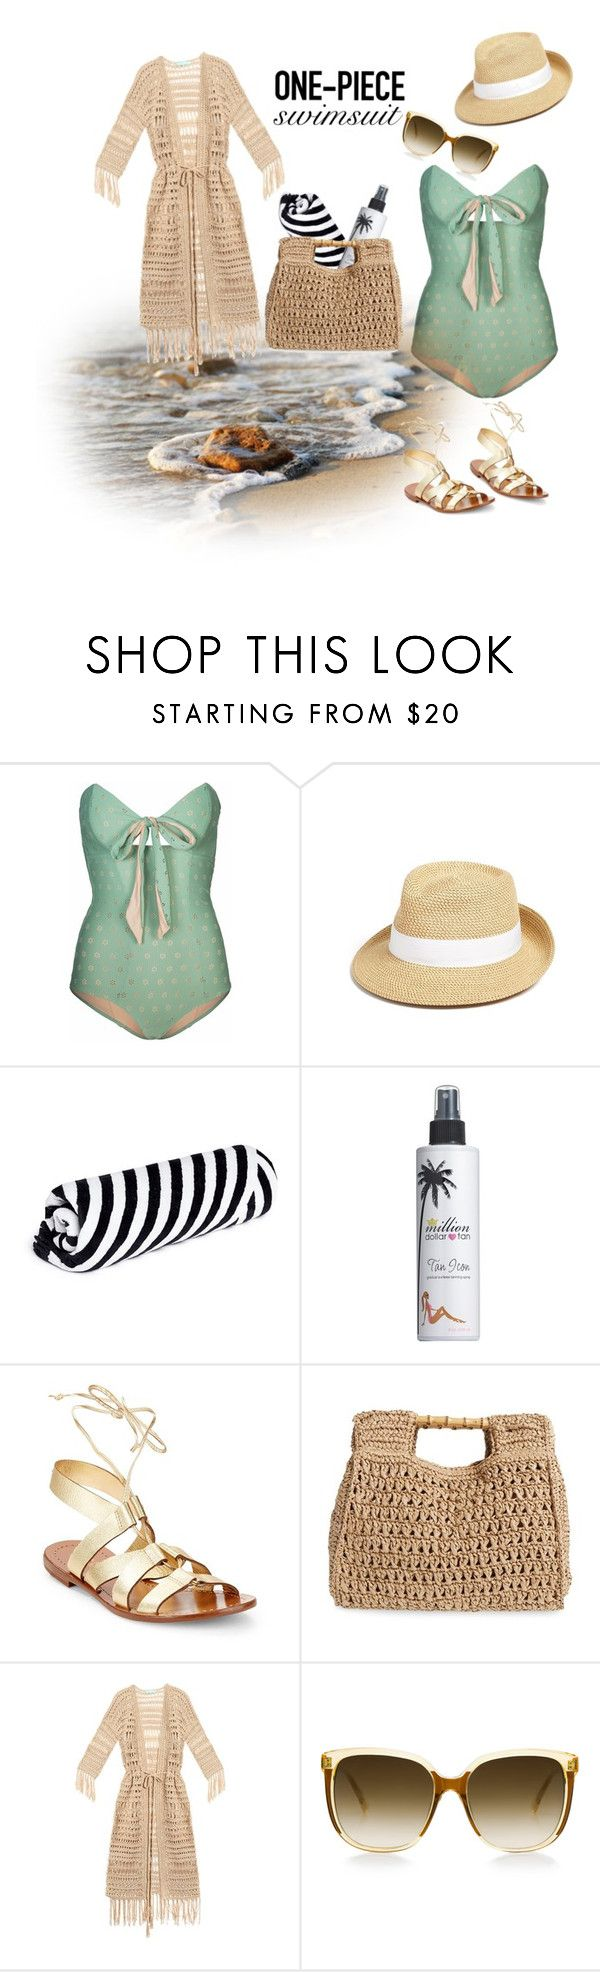 """One-Piece"" by medgurl ❤ liked on Polyvore featuring Lilliput & Felix, Eric Javits, The Beach People, Million Dollar Tan, Kate Spade, San Diego Hat Co., Melissa Odabash and onepieceswimsuit"